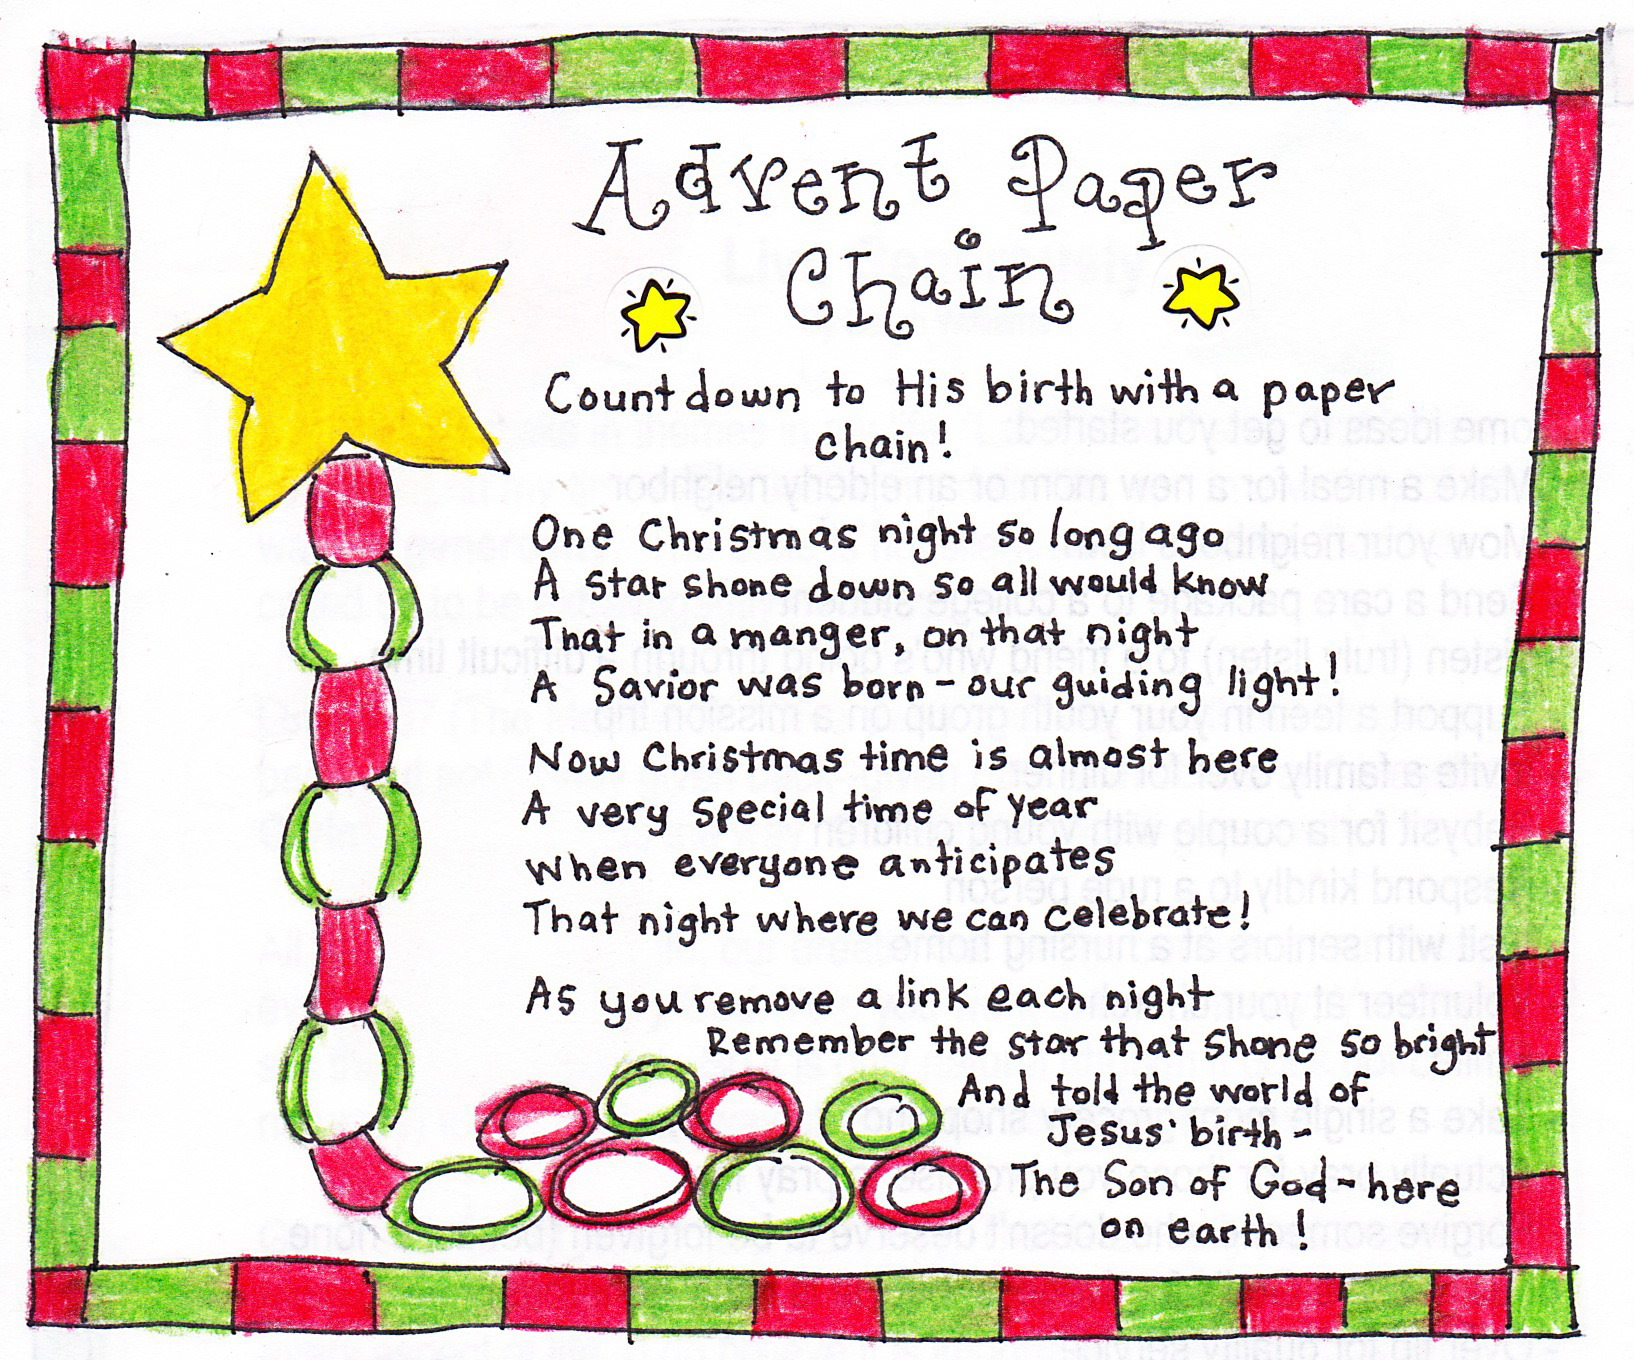 Advent Paper Chain Countdown - FREE Printable - Happy Home Fairy